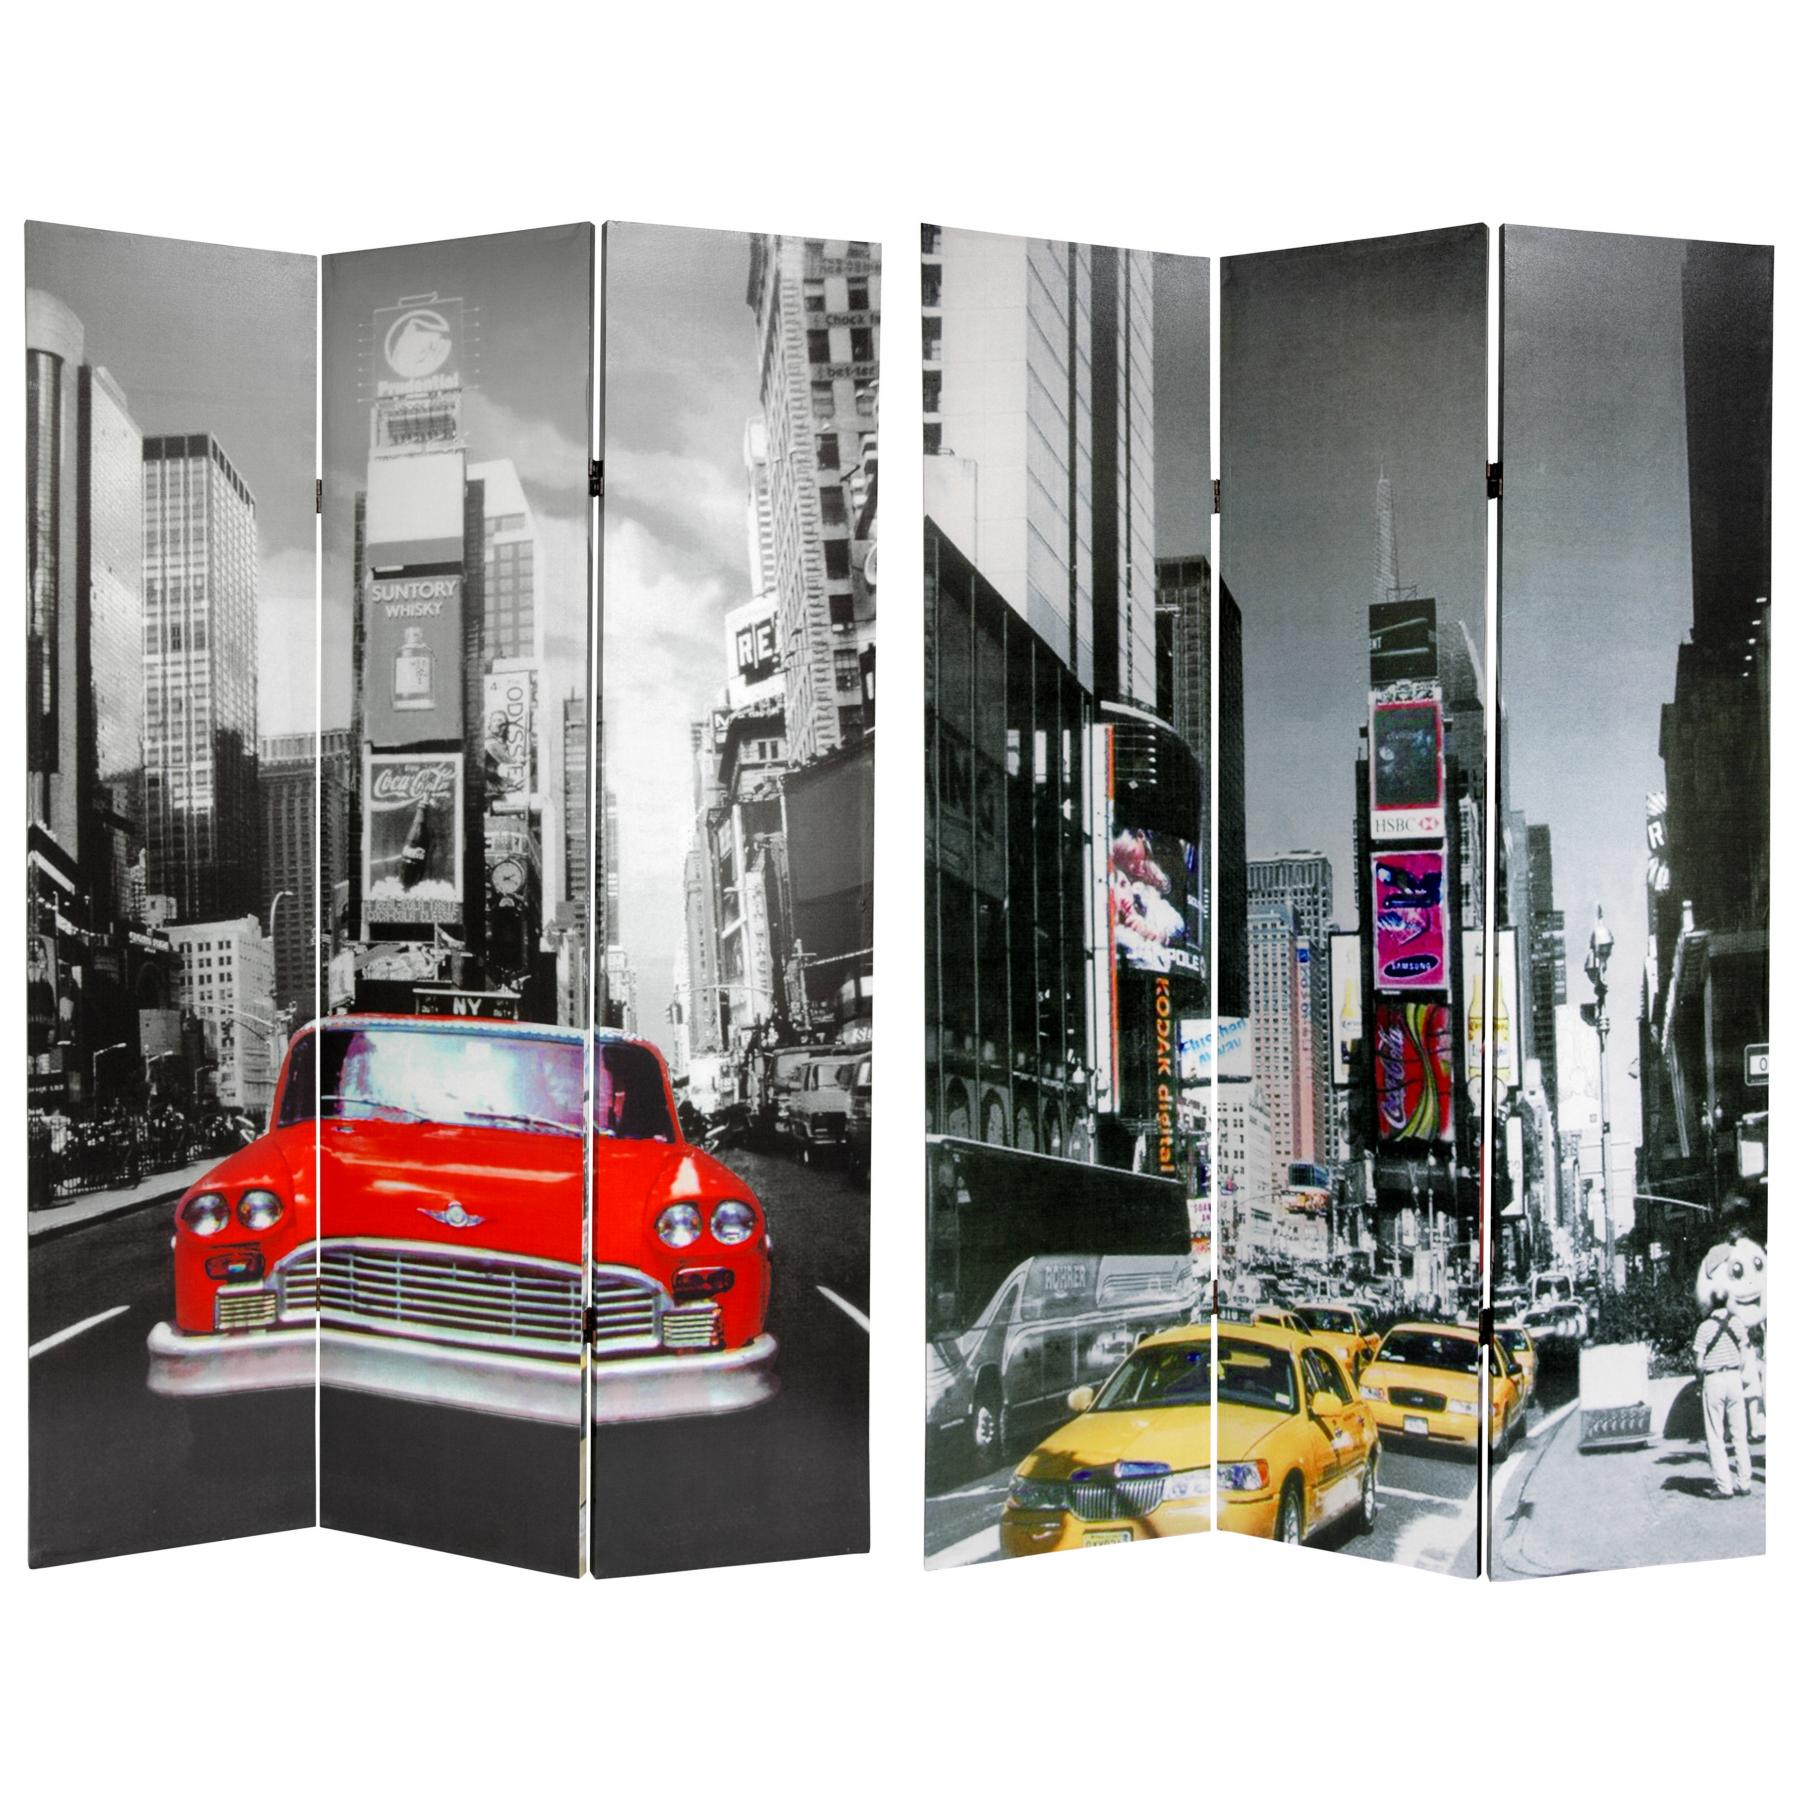 6 ft. Tall New York City Taxi Room Divider | RoomDividers.com